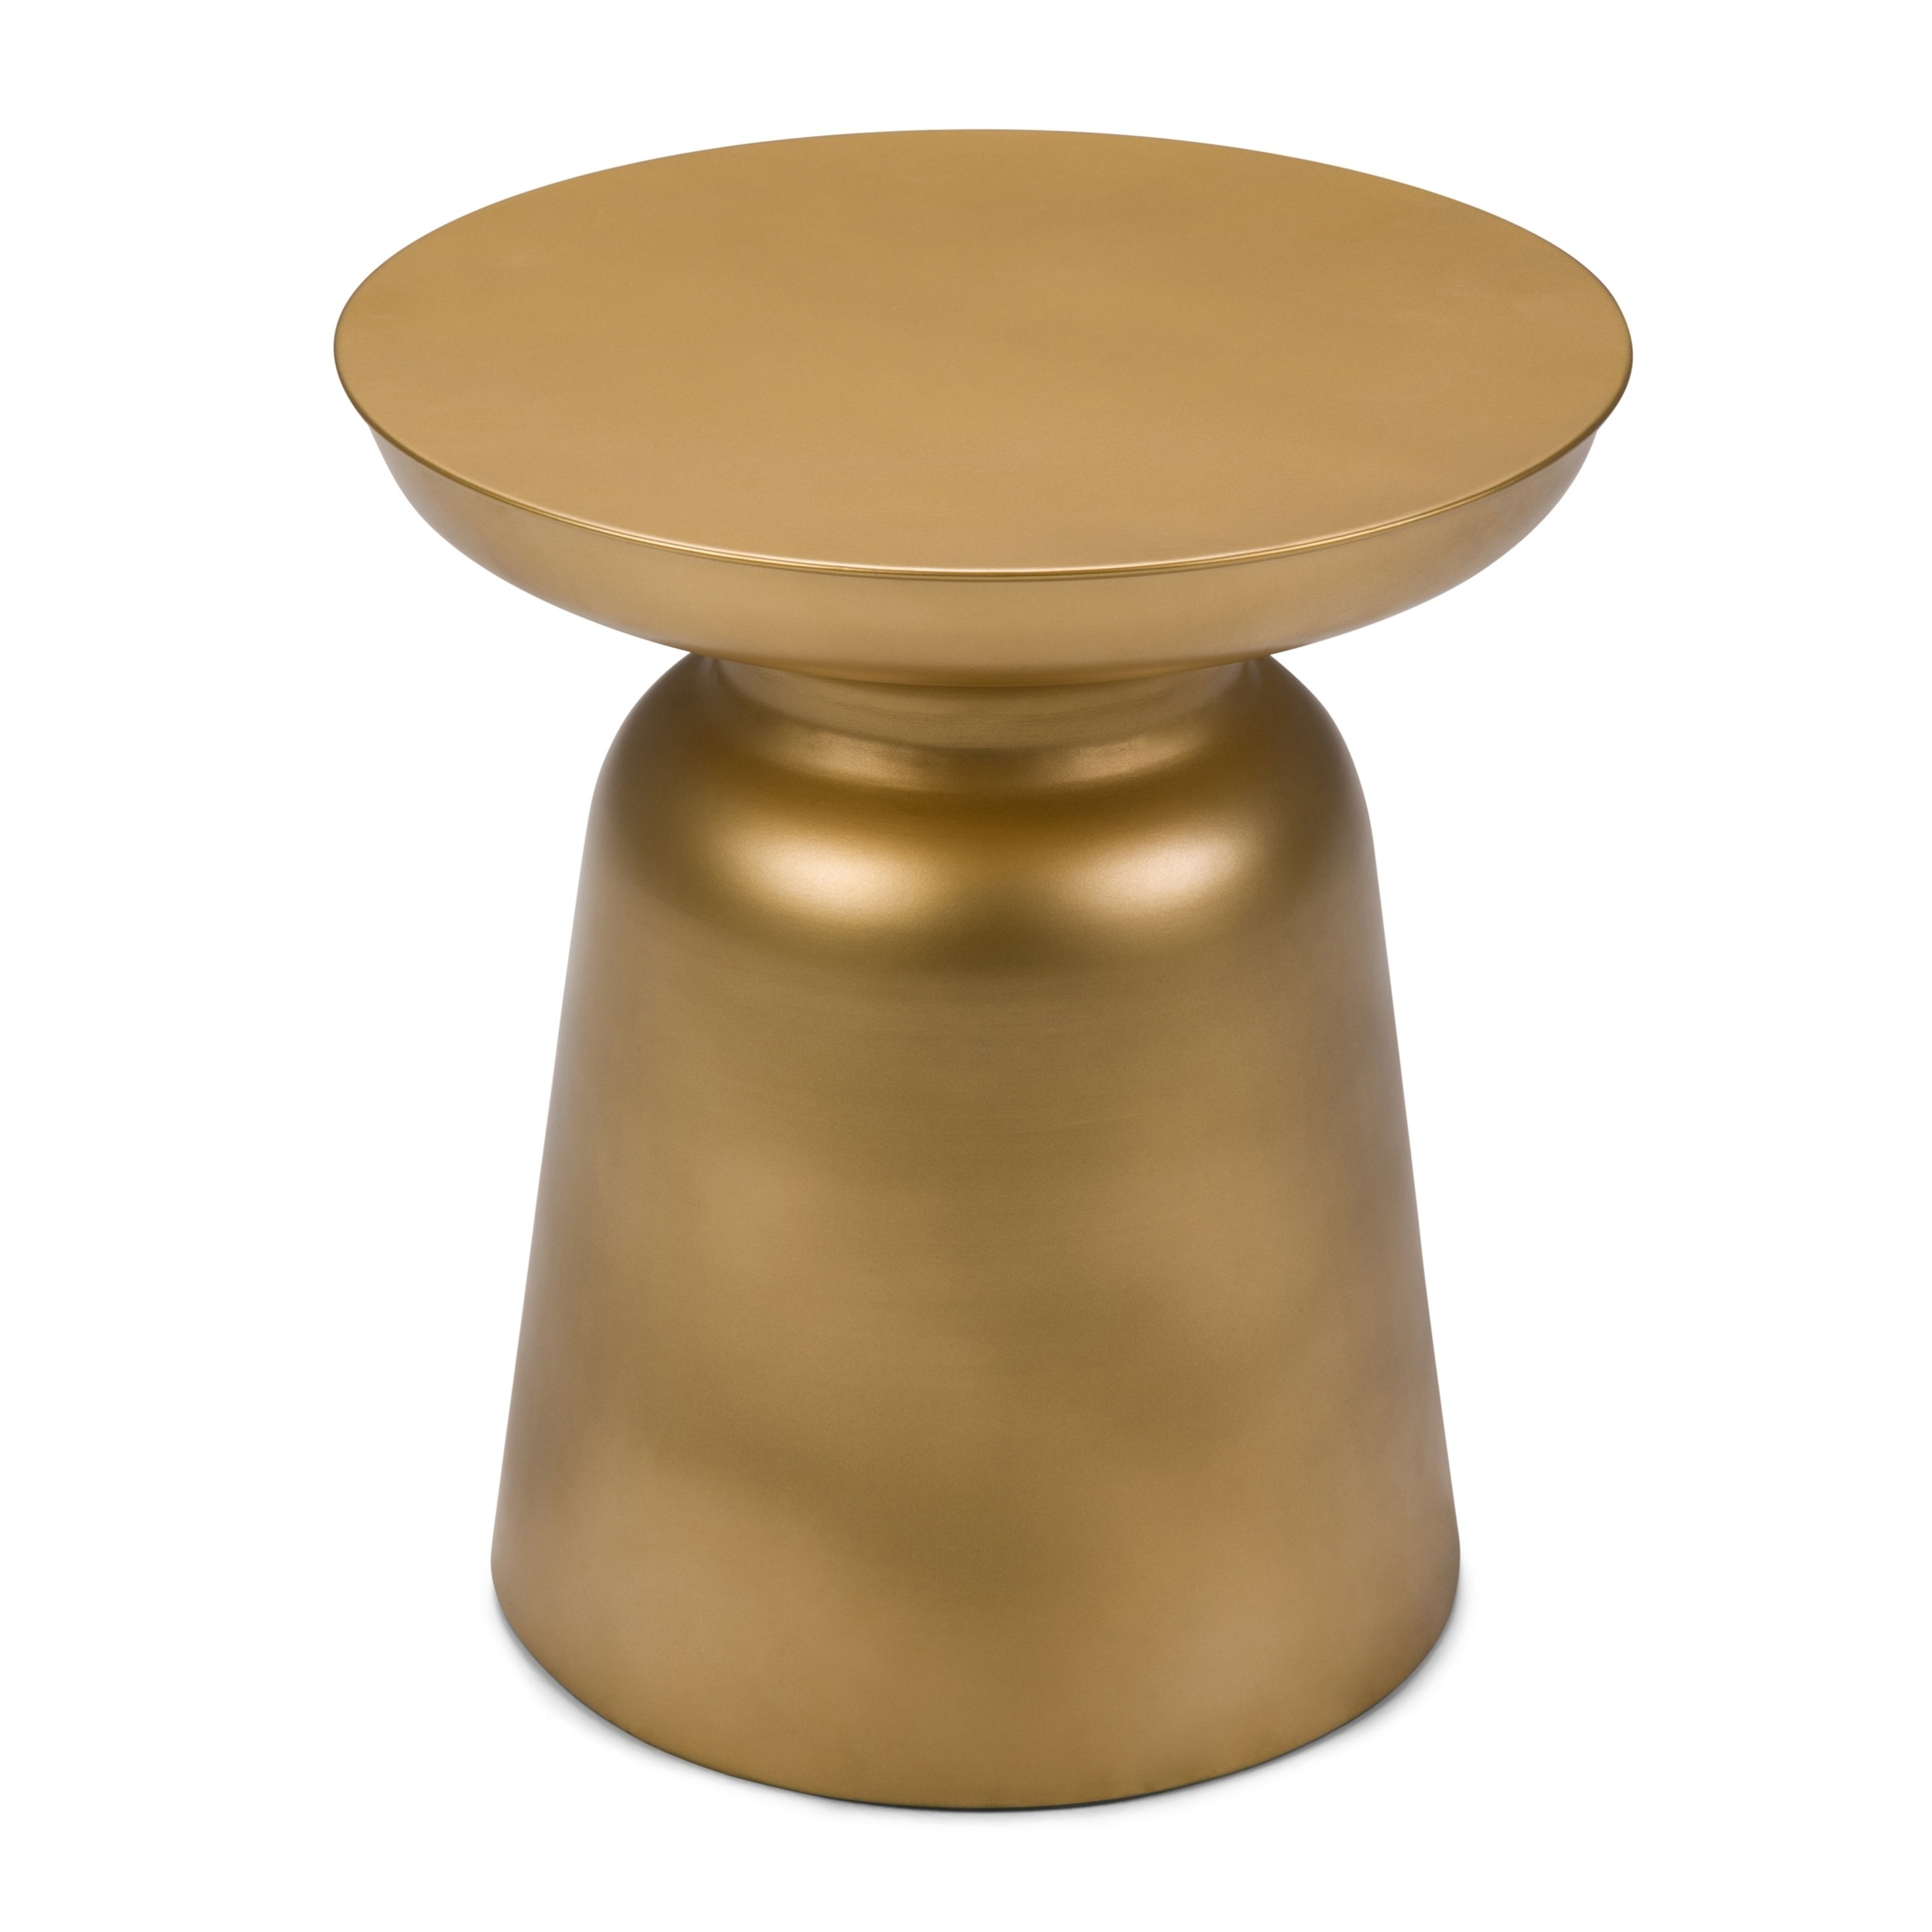 wyndenhall layne metal accent drum side table gold free shipping today tier target unfinished cabinets white modern usb end mirrored brass marble square coffee teal chair